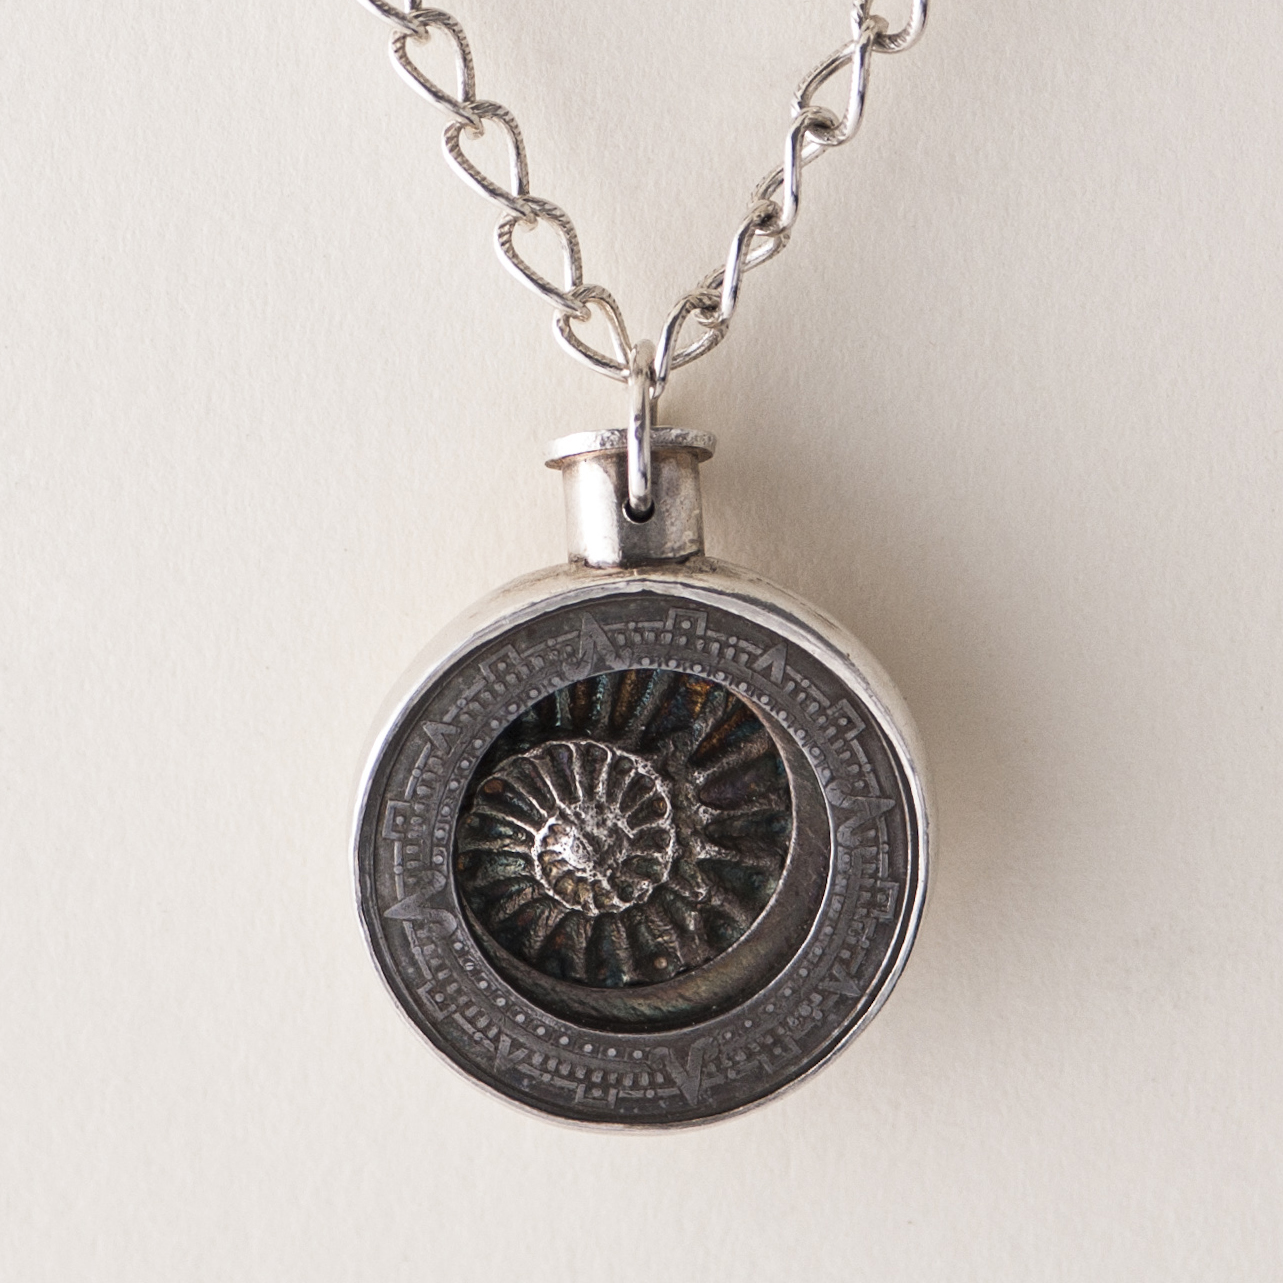 Peggy foys studio log tbt original mayan compass mayan compass pendant in sterling silver aloadofball Images